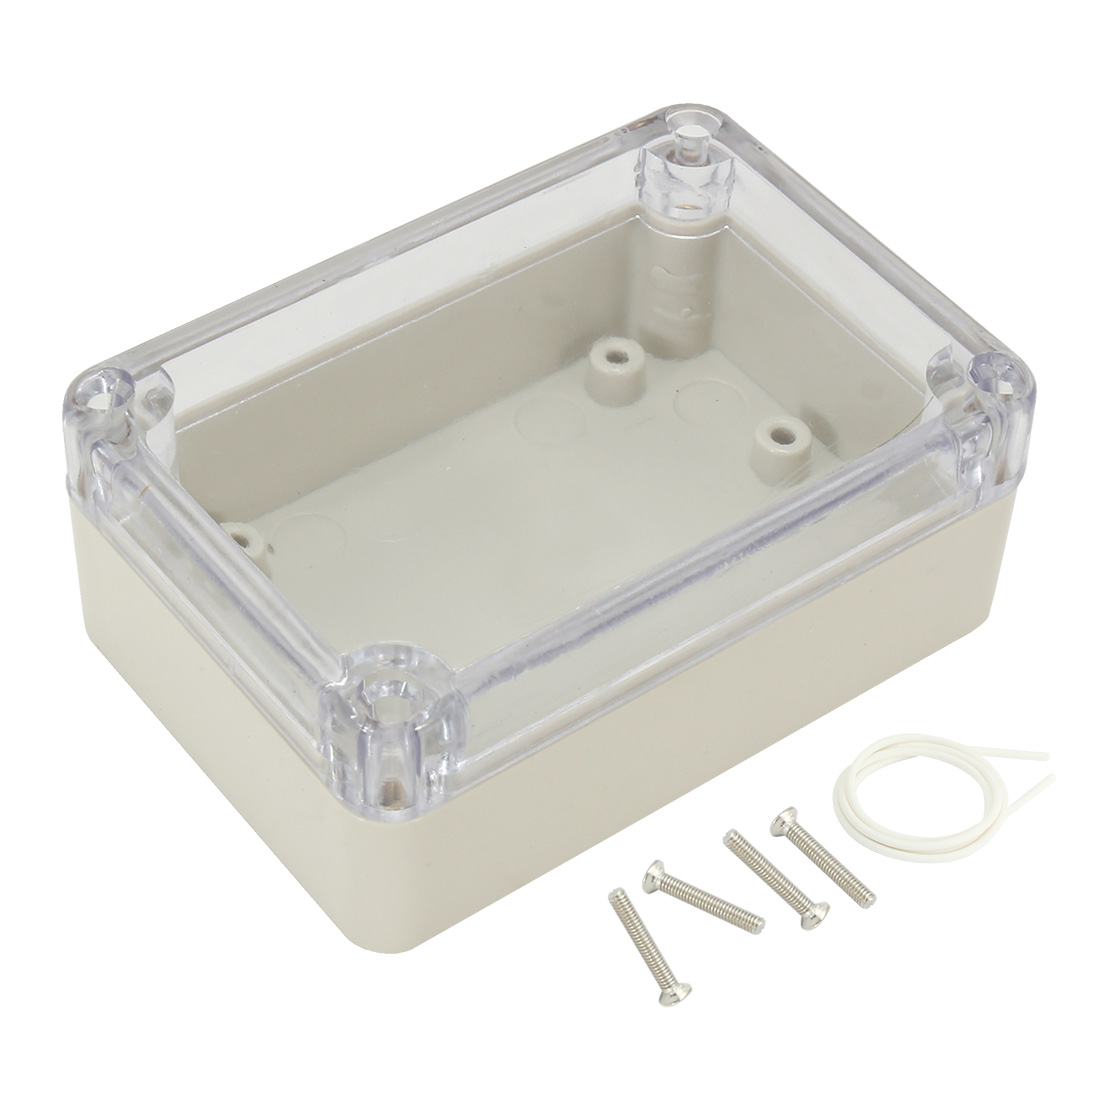 "3.27""x2.28""x1.3""(83mmx58mmx33mm) ABS Junction Box Electric Project Enclosure Clear"